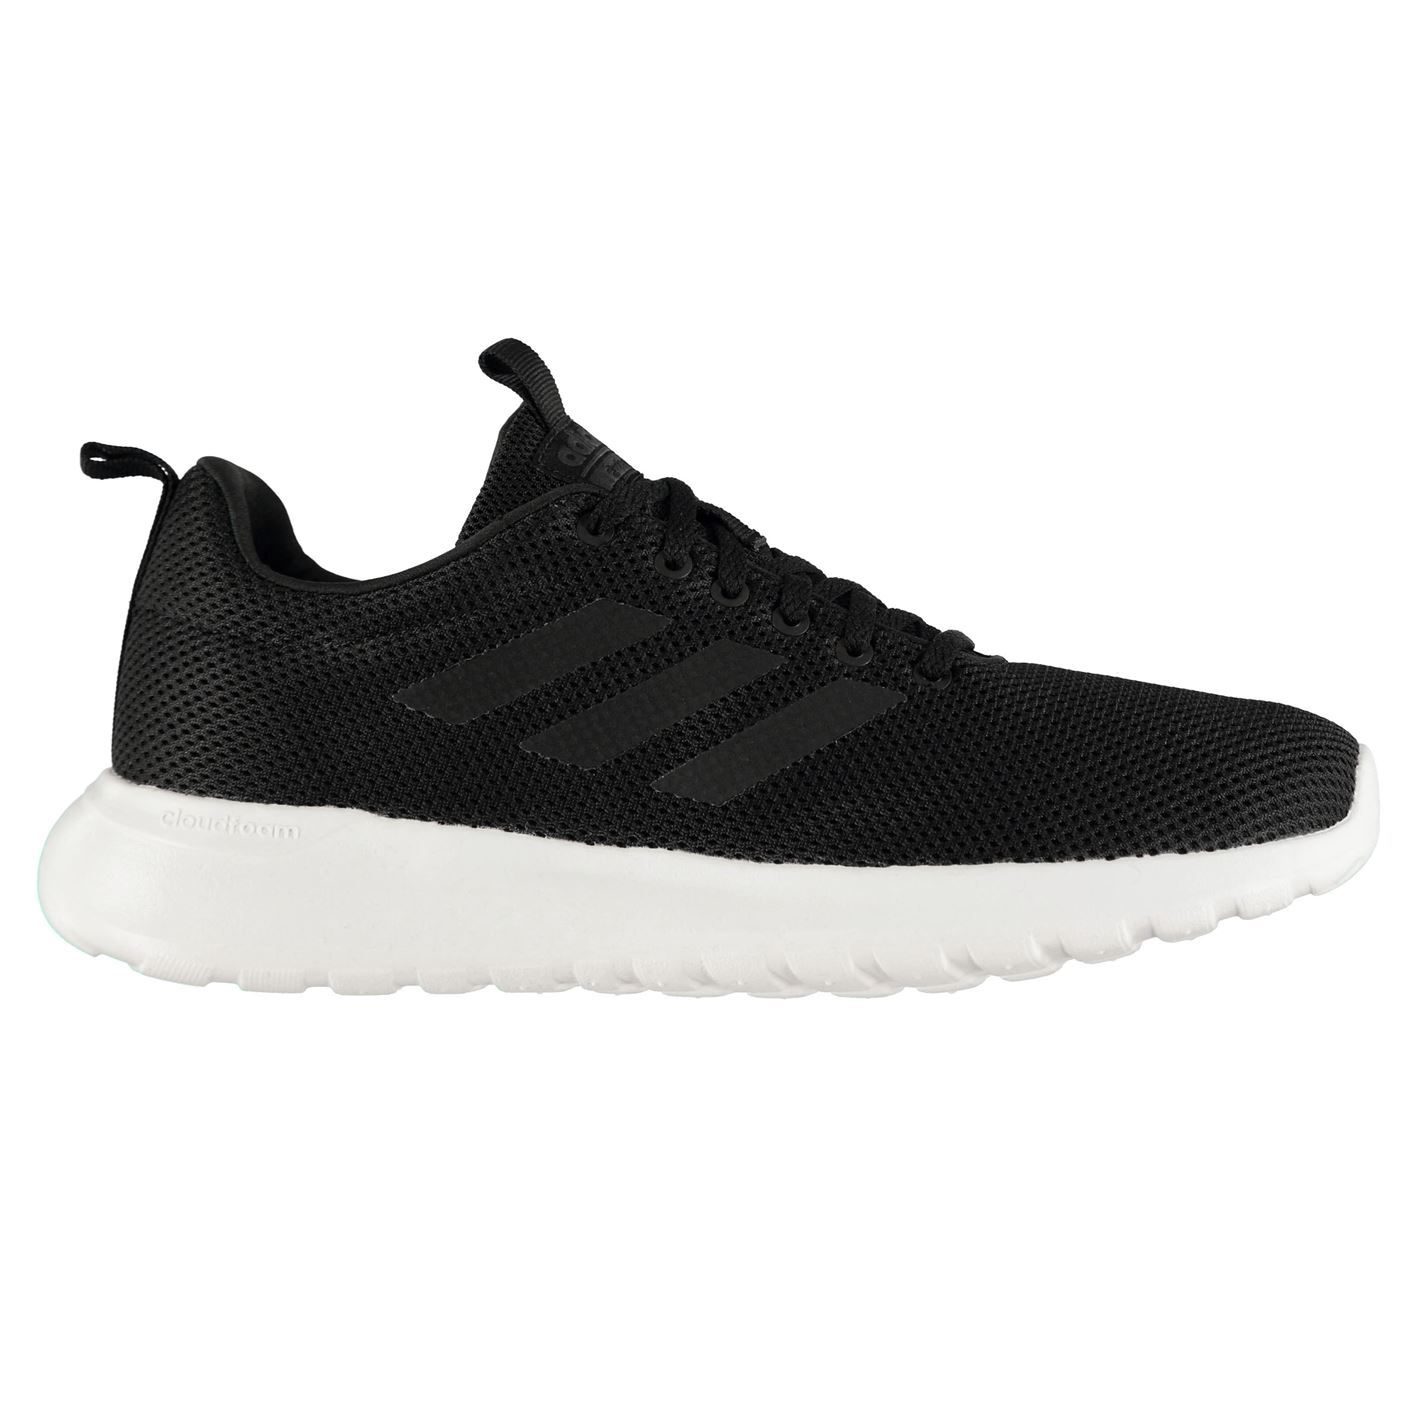 Racer Zapatos Fitness Adidas Zapatillas Hombre Lite Cloudfoam Clean Running 1EZOH